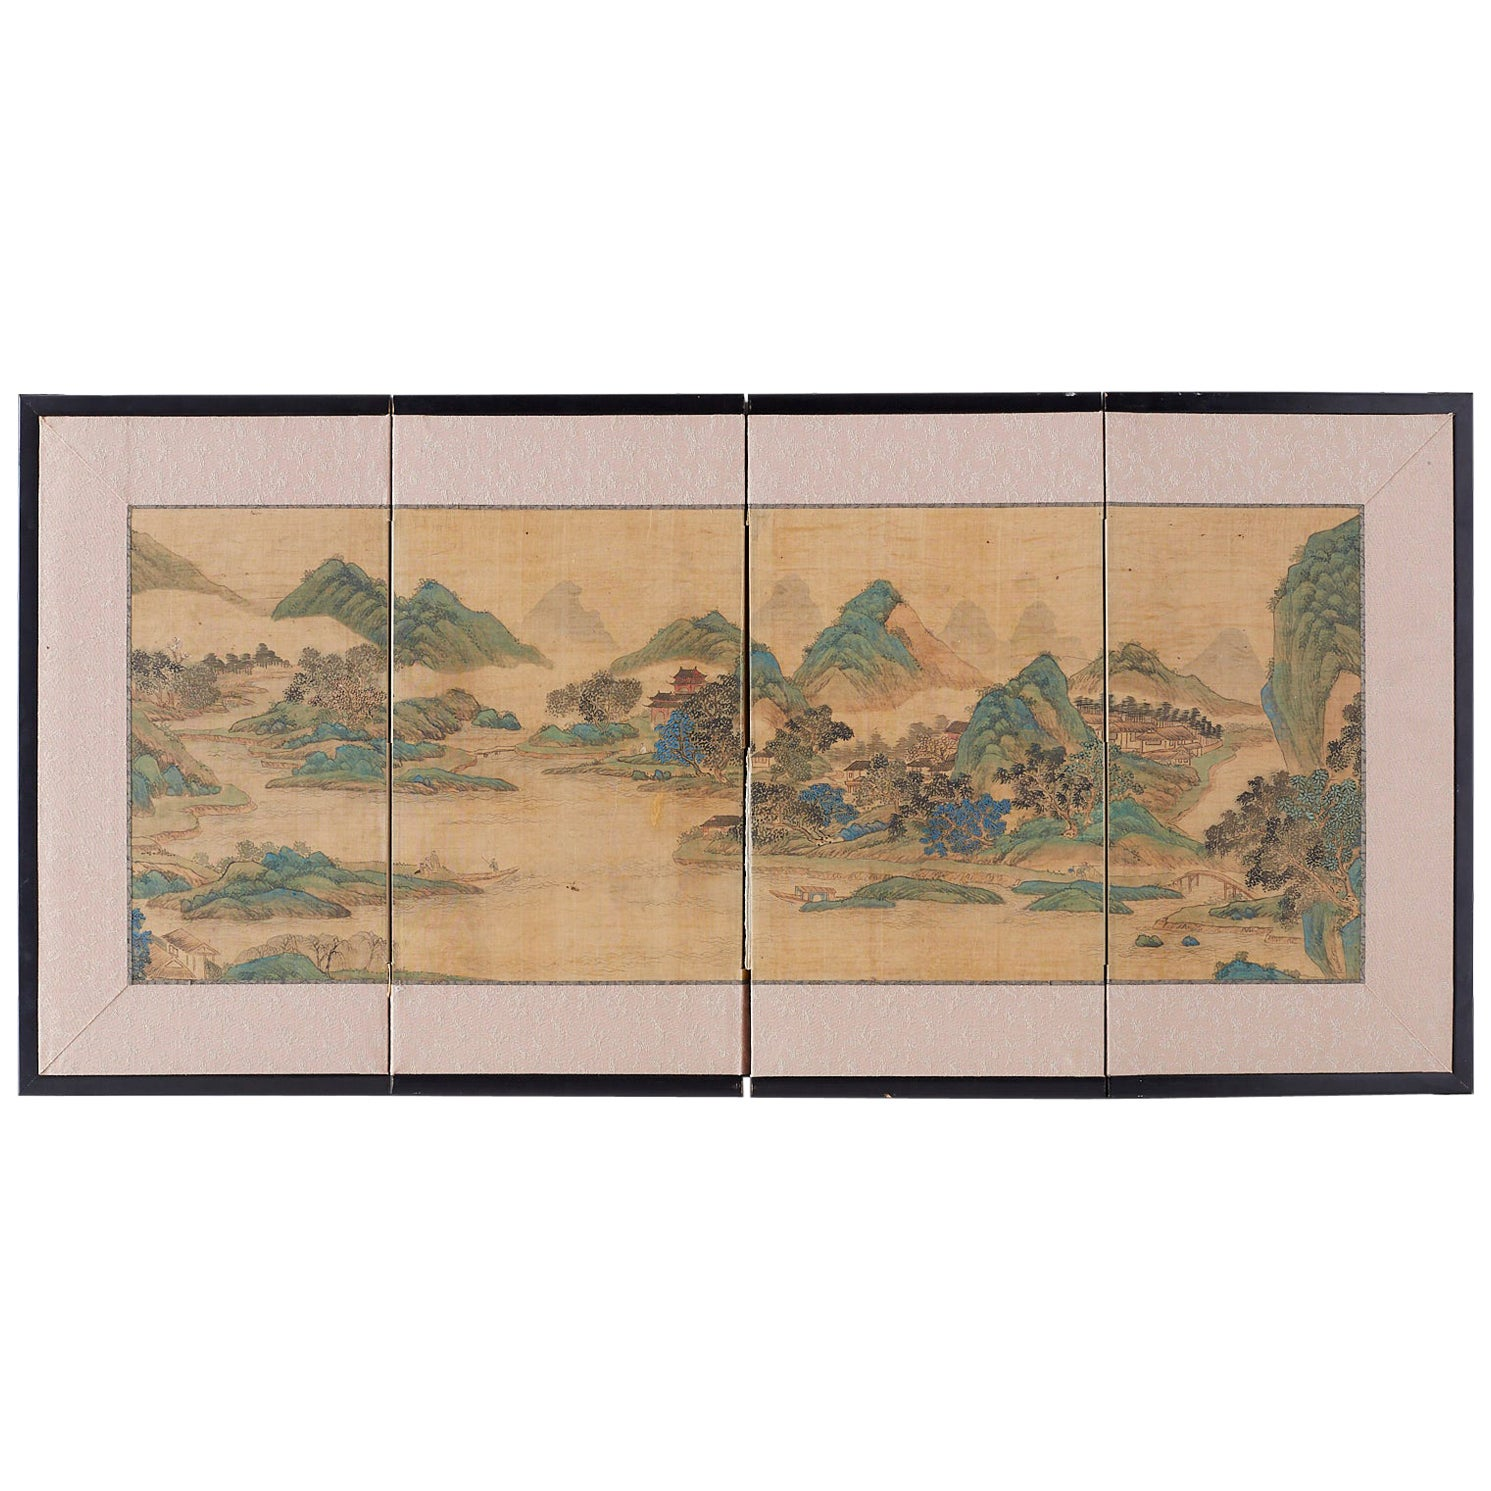 Japanese Miniature Four-Panel Screen Blue and Green Landscape